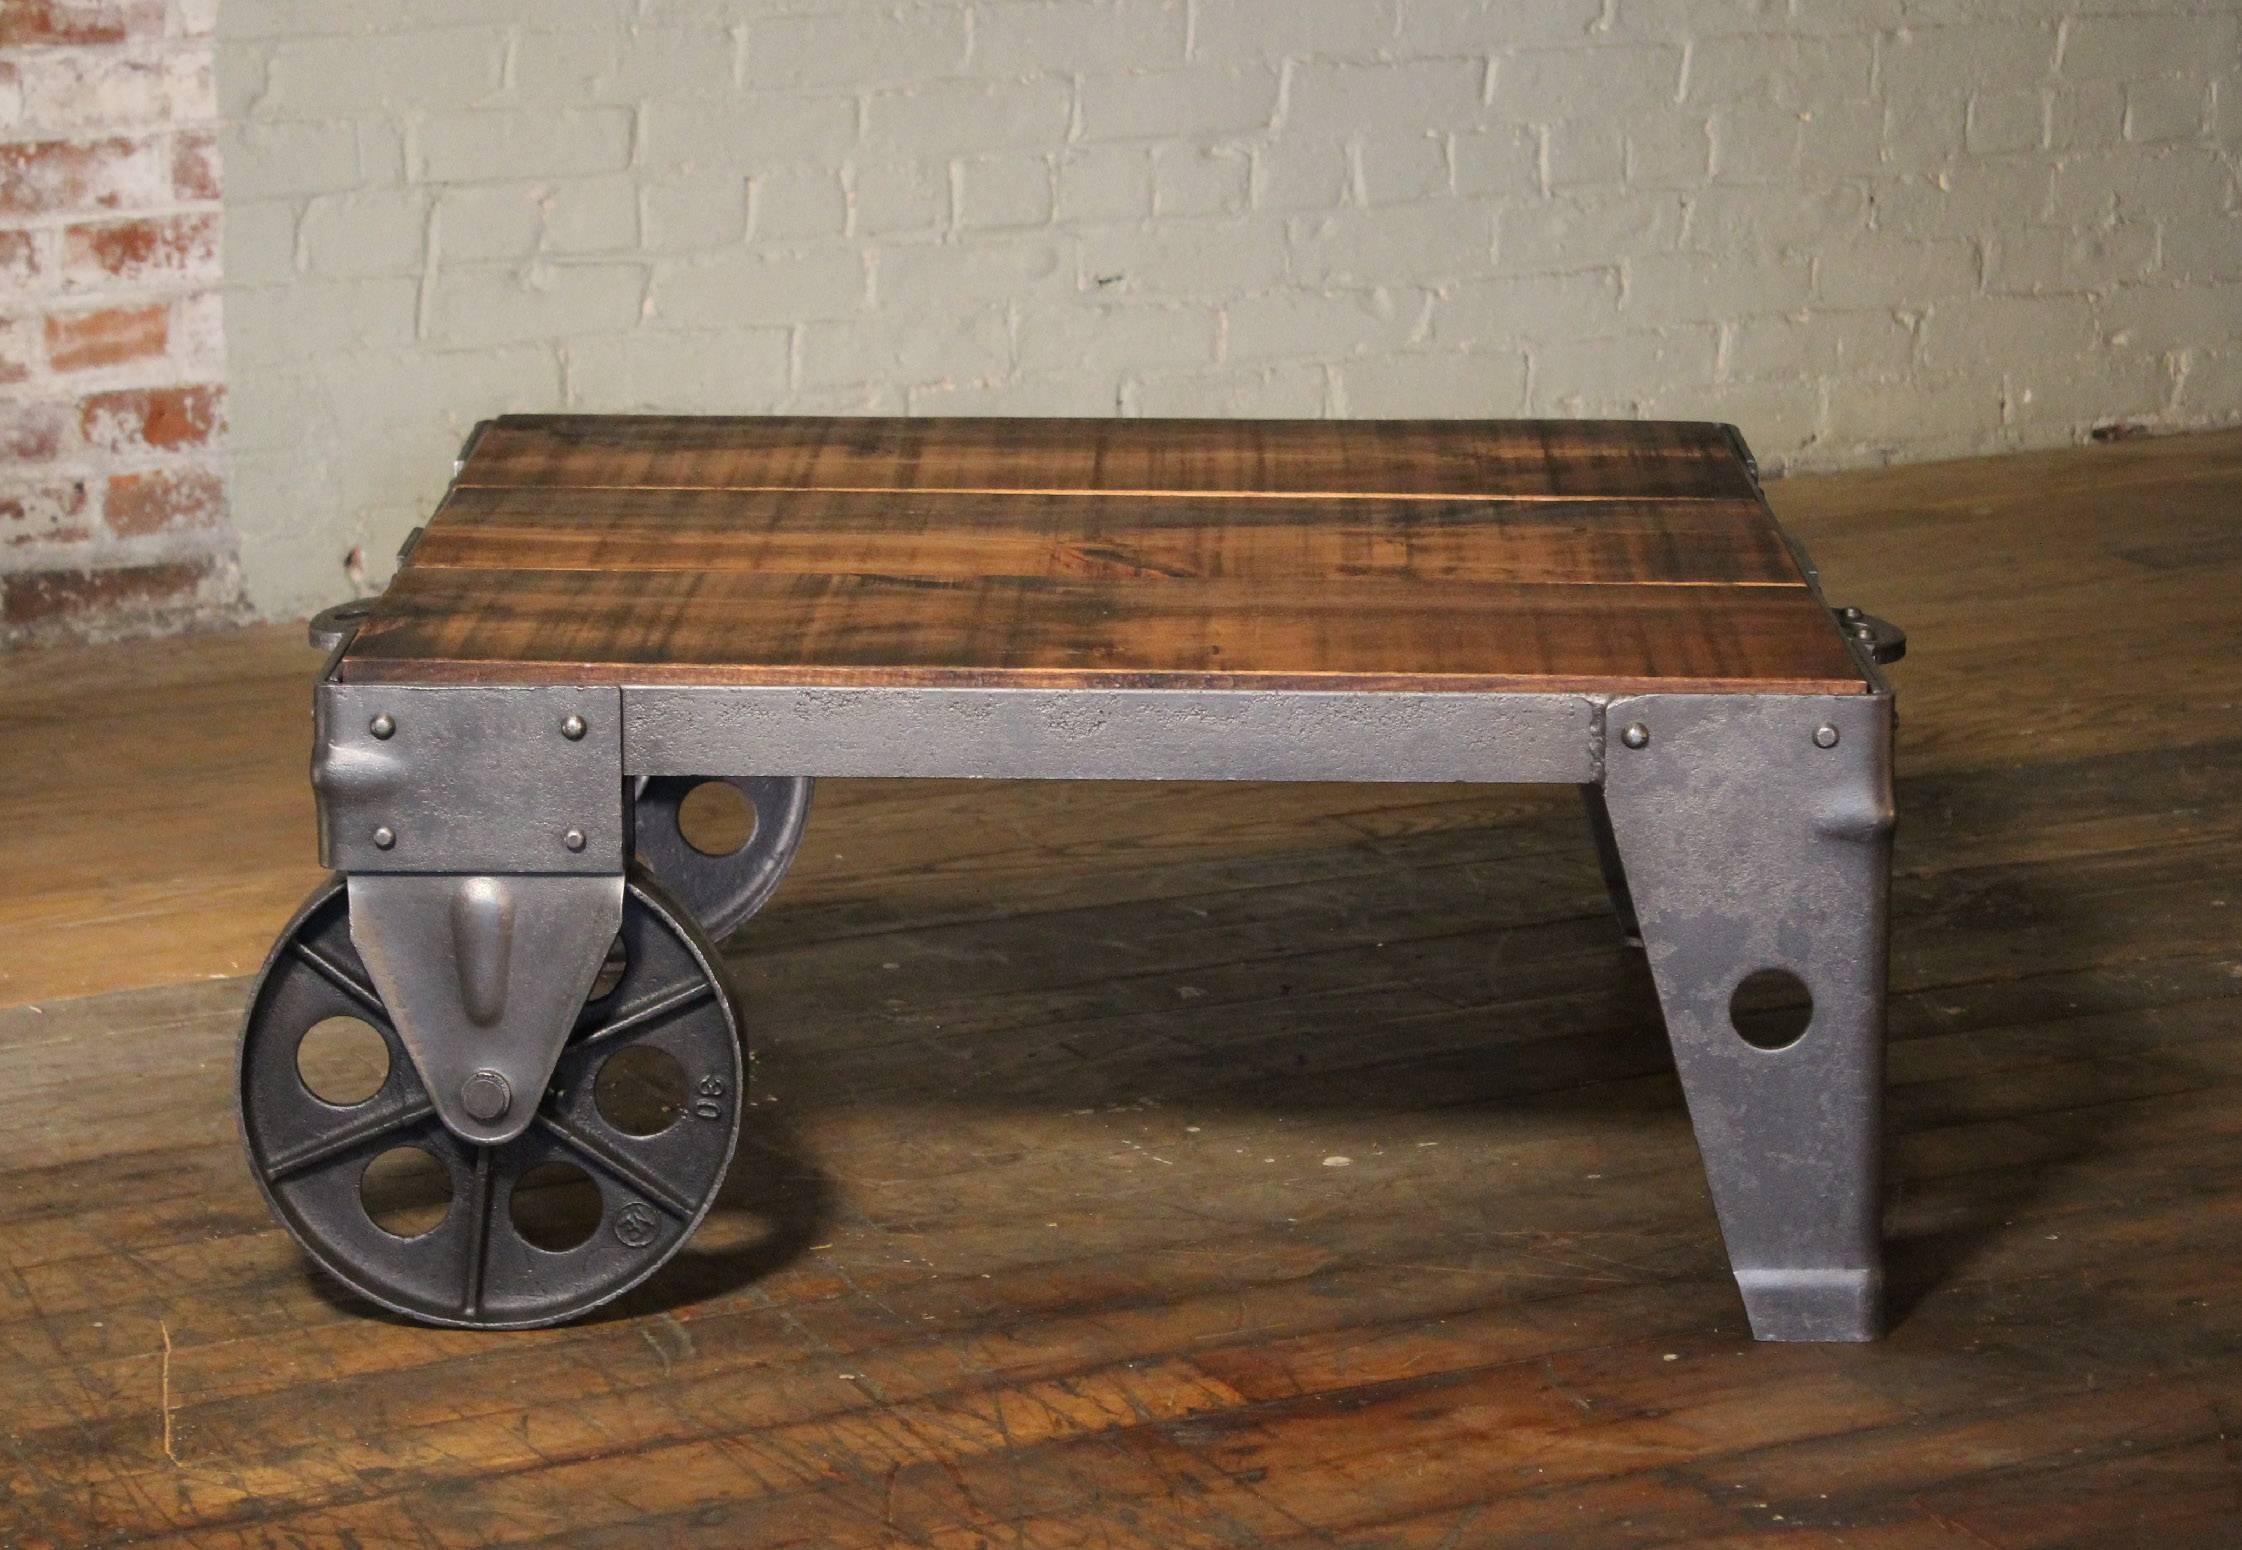 Merveilleux Authentic Vintage Industrial Cart Coffee Table Factory Shop Wood Steel And  Iron For Sale At 1stdibs